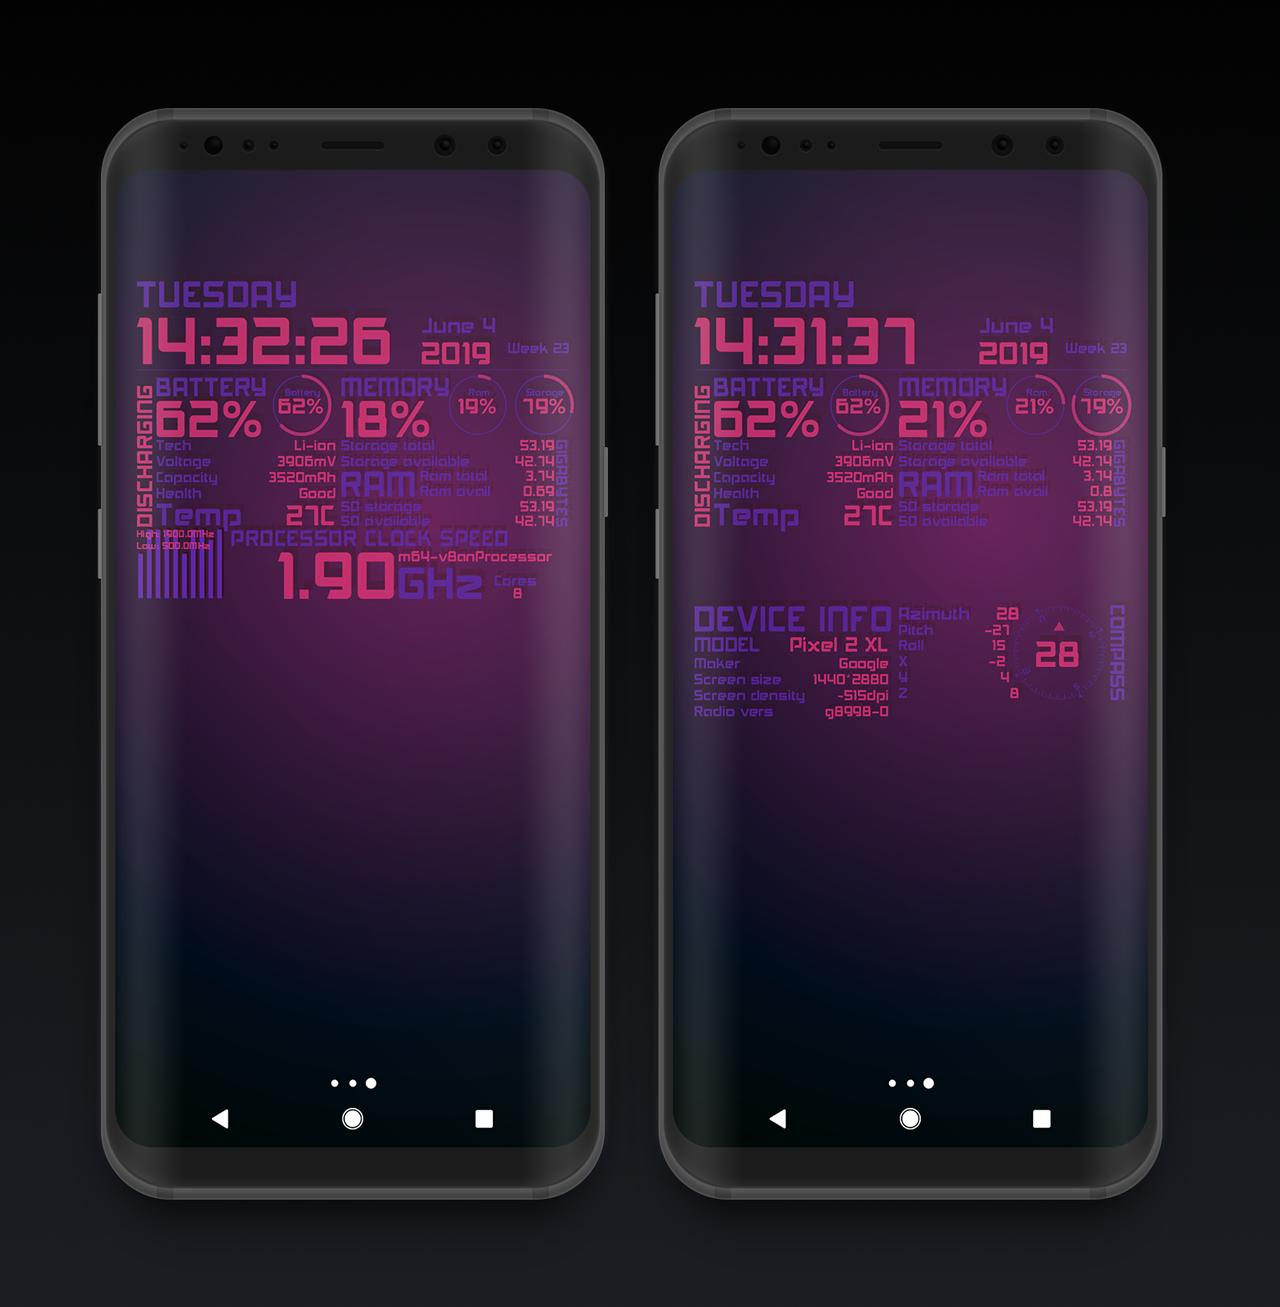 Device Info Elegance Live Wallpaper free for Android - APK